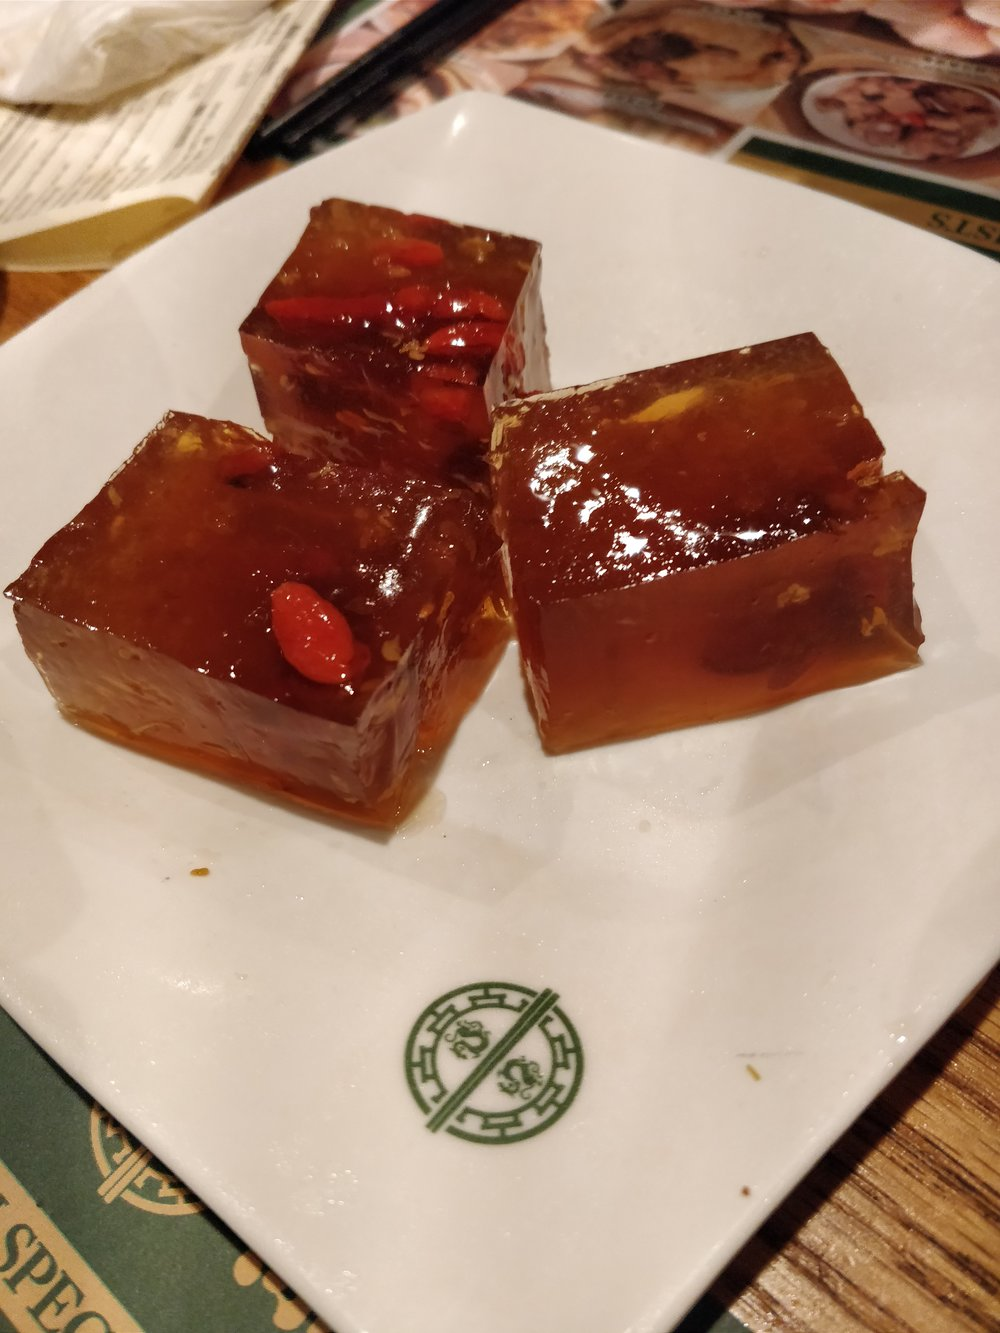 Sweet osmanthus jelly with goji berry